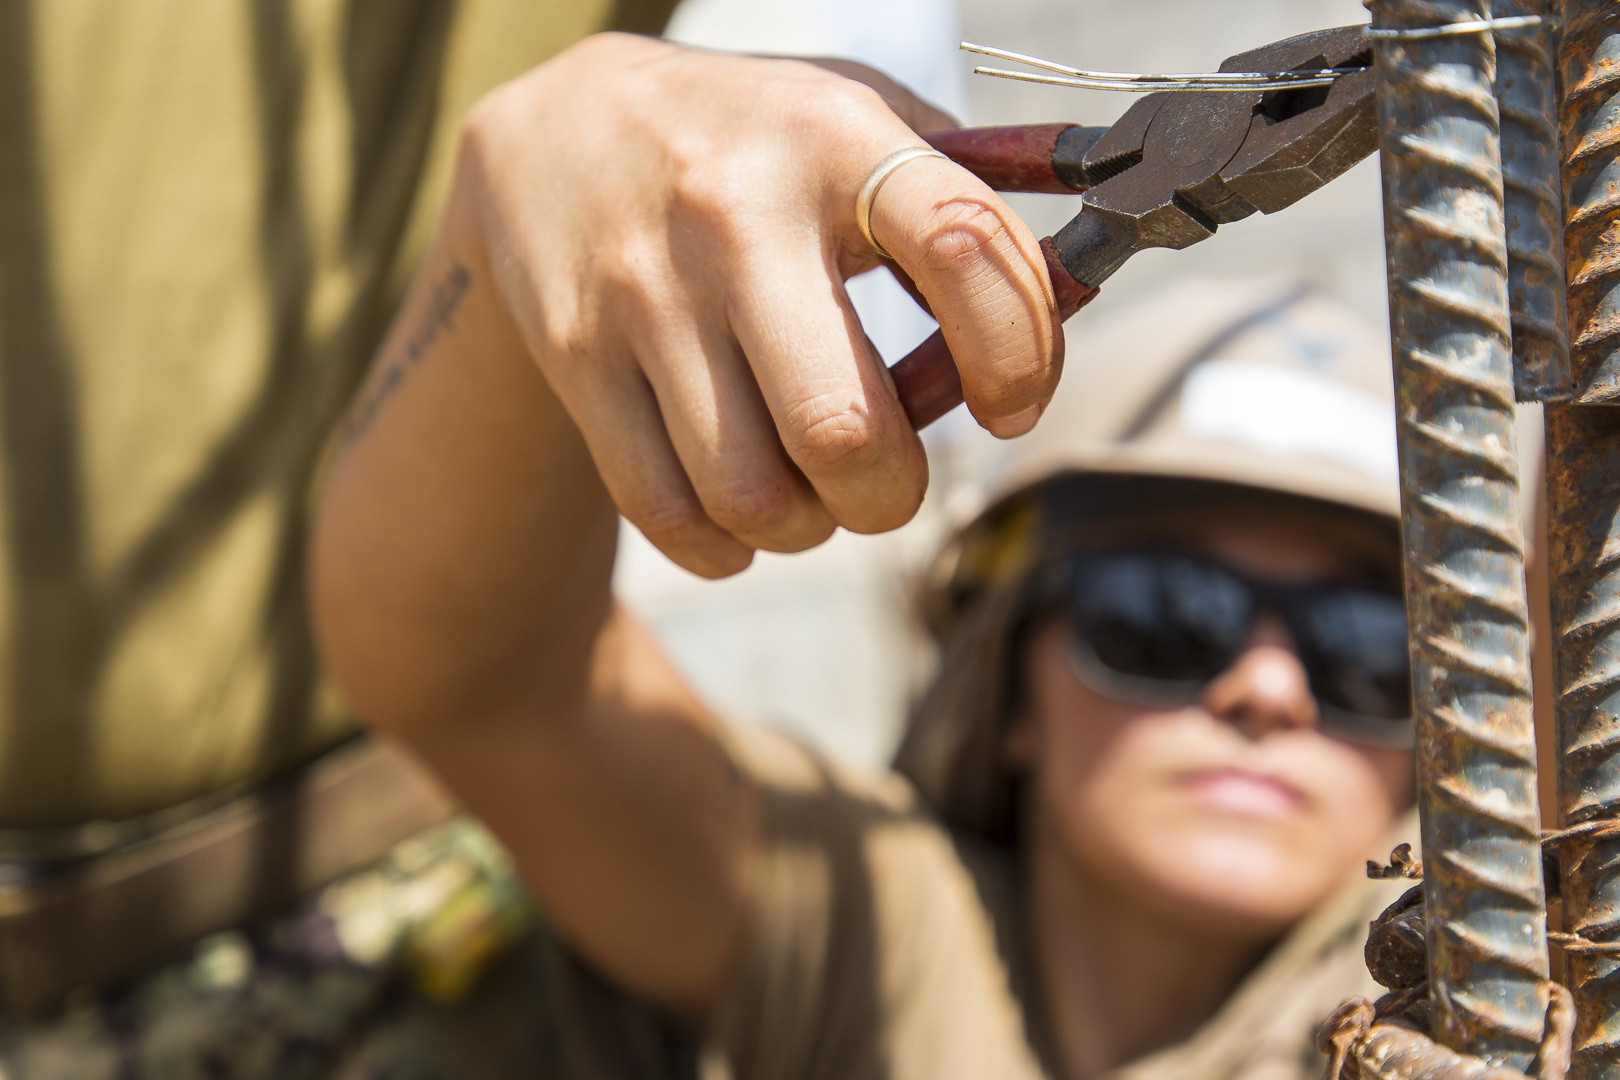 U.S. Navy Construction Electrician 3rd Class Sandra Elly, a Seabee assigned to Naval Mobile Construction Battalion 1 (NMCB 1) ties in rebar at a construction site in Ali Oune, Djibouti, Sept.19, 2018. Seabees from NMCB 1 Detachment Horn of Africa are building a medical facility in Ali Oune in support of the Ministry of Health for Djibouti. (U.S. Air National Guard photo by Master Sgt. Andrew Sinclair)